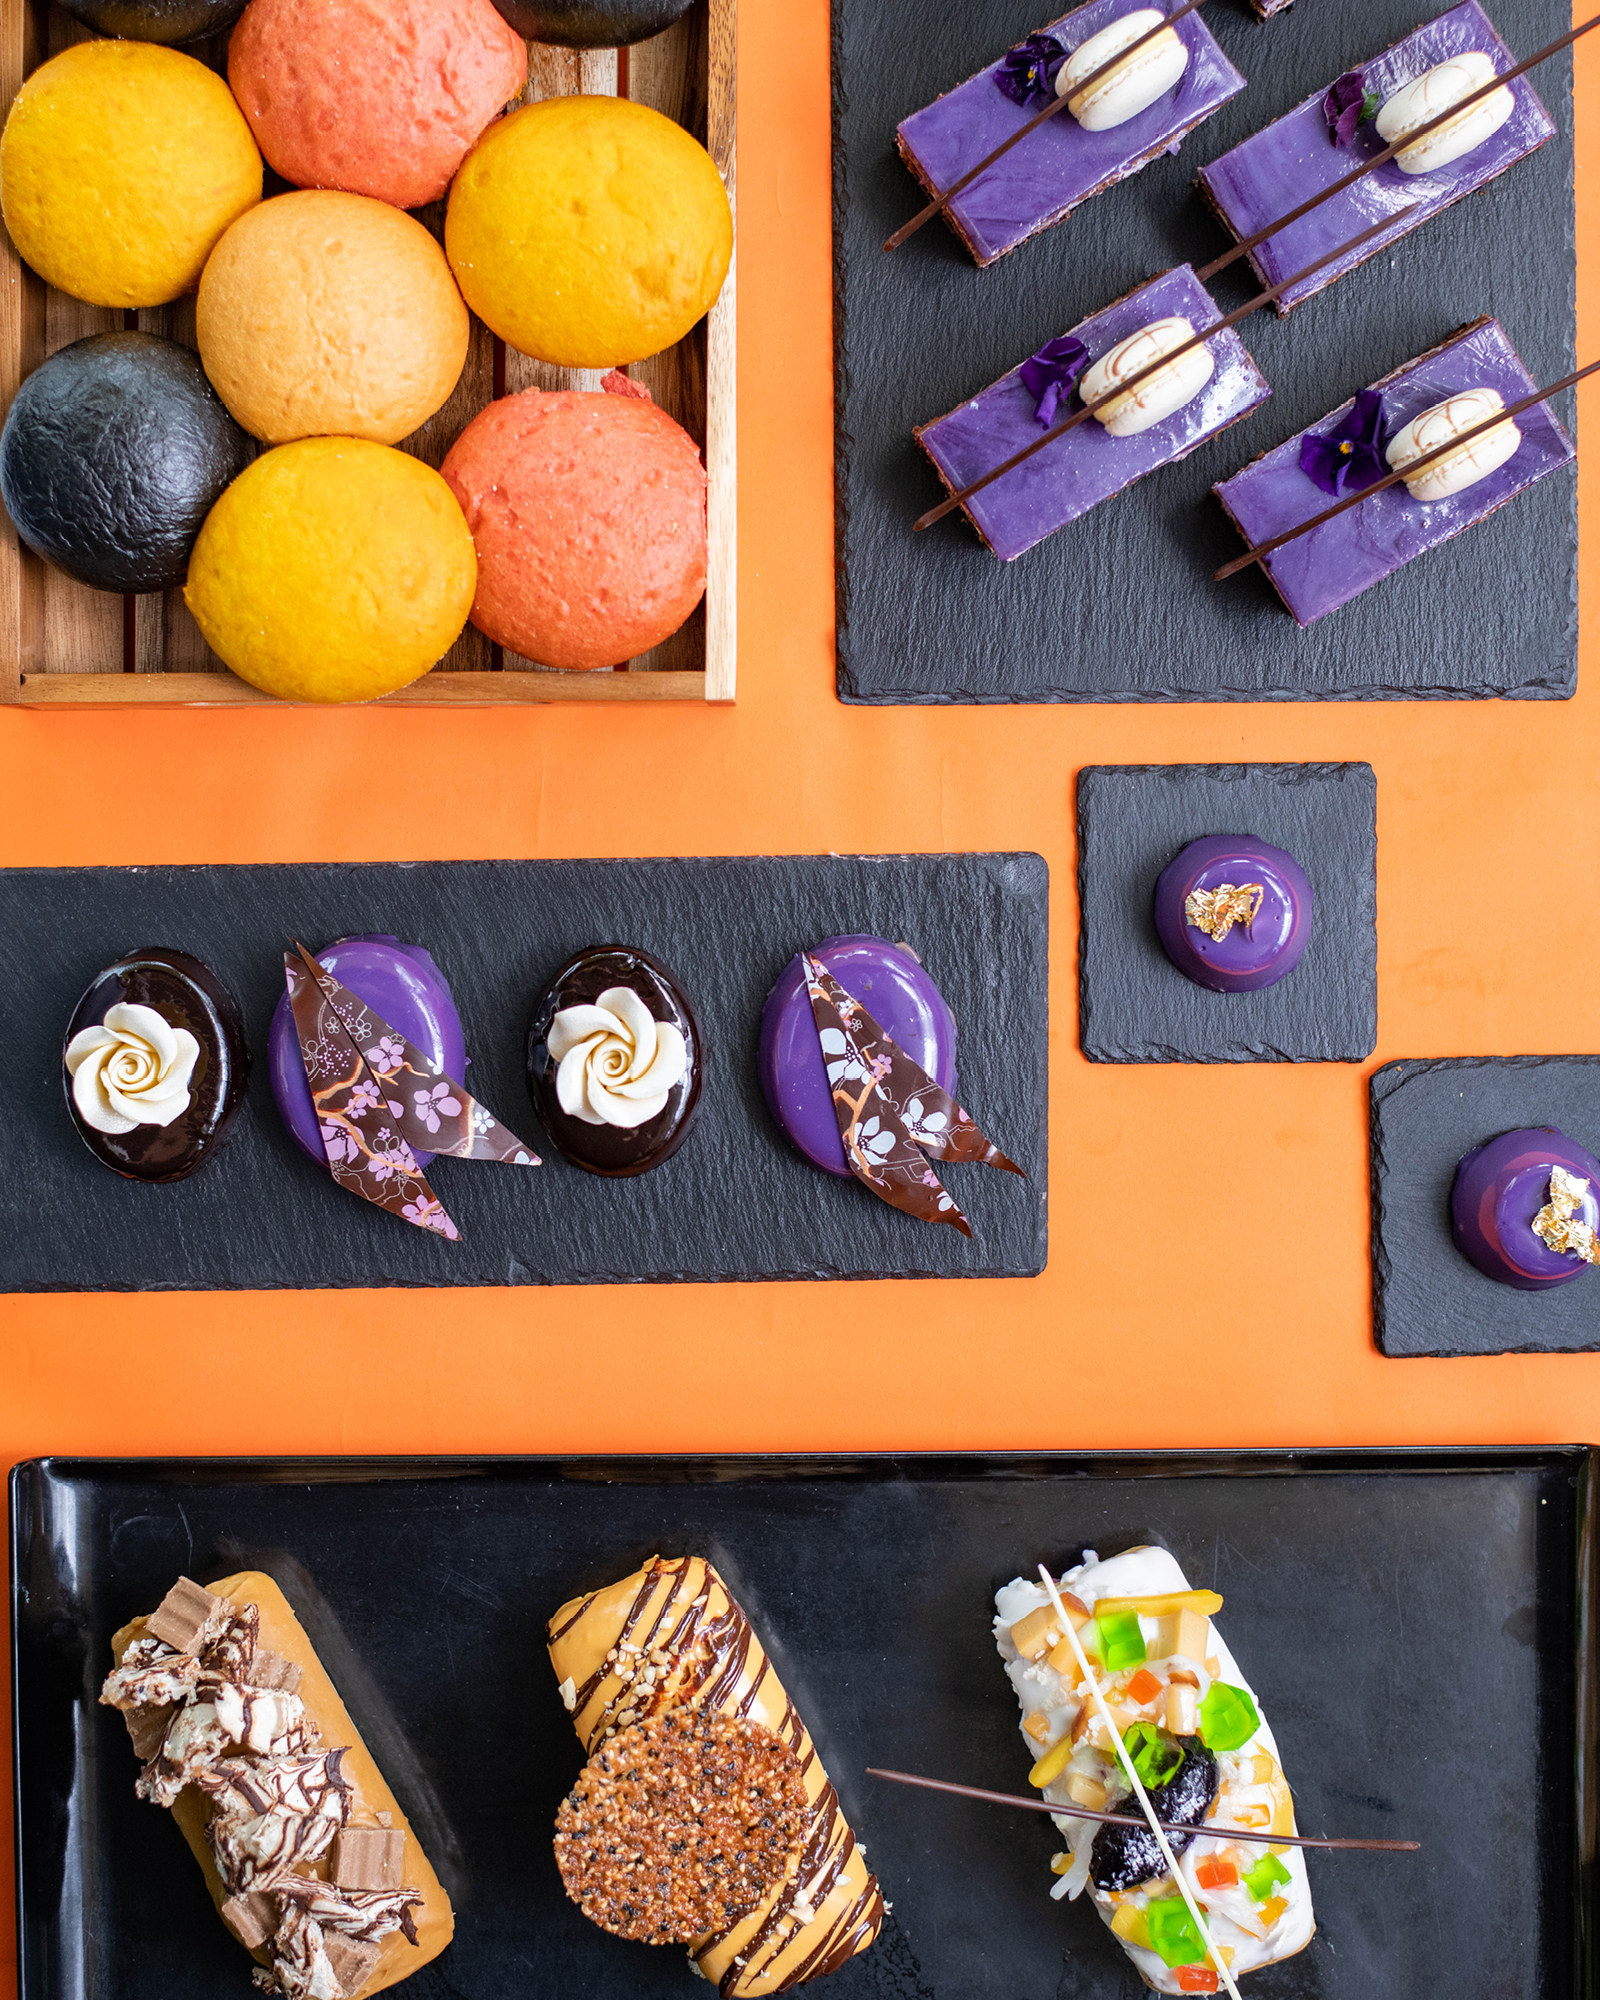 Delicate patisserie will be central to Kasa and Kin, including treats made with ube, or purple yam